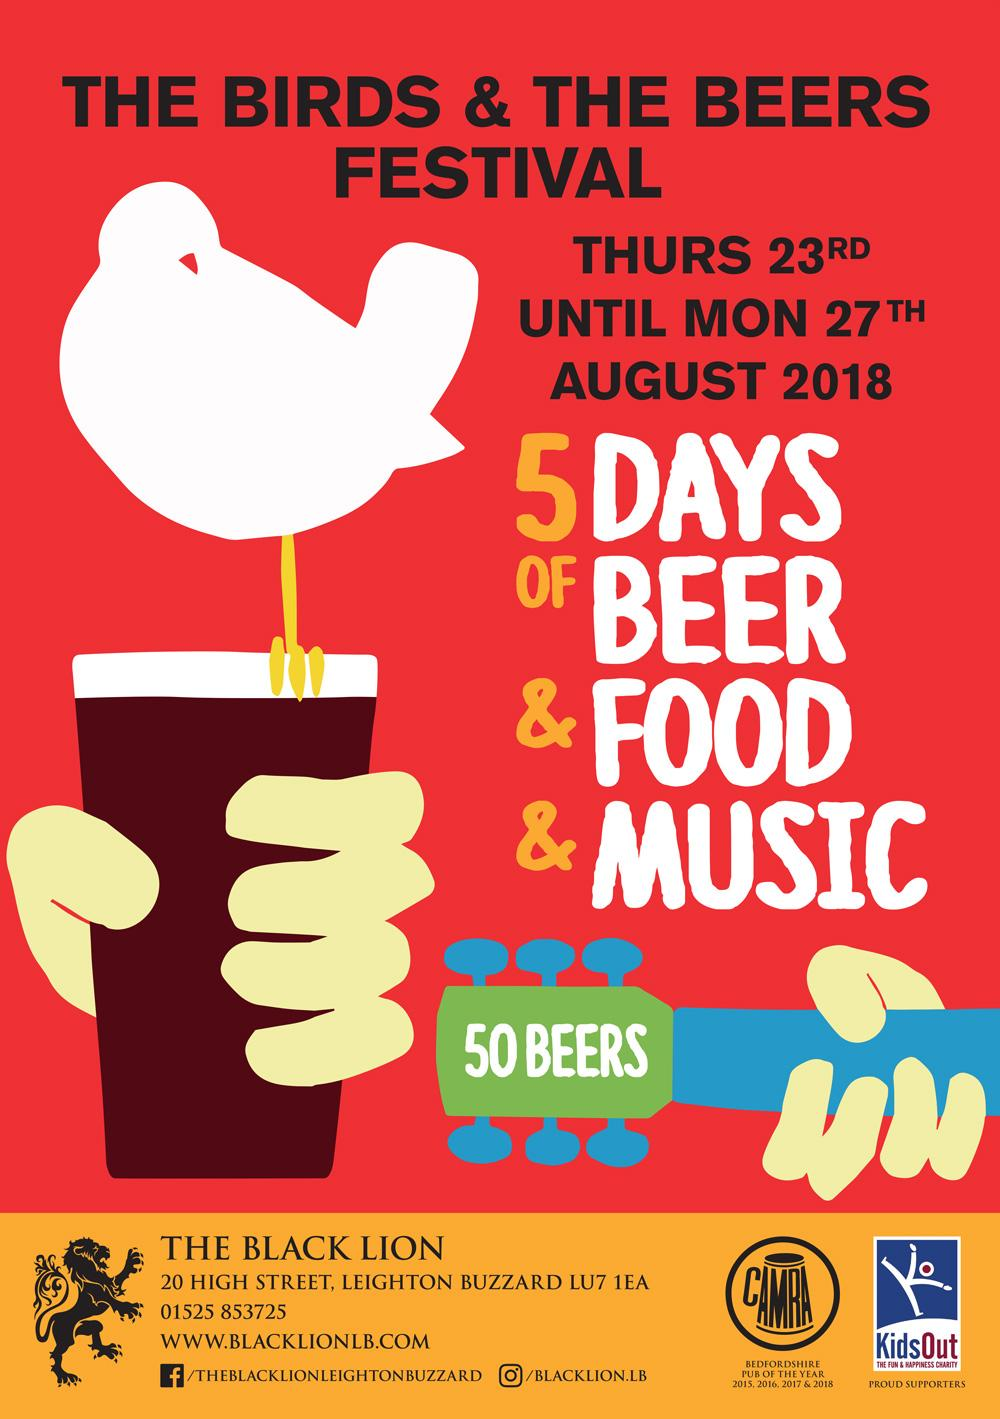 The Birds & The Beers Festival